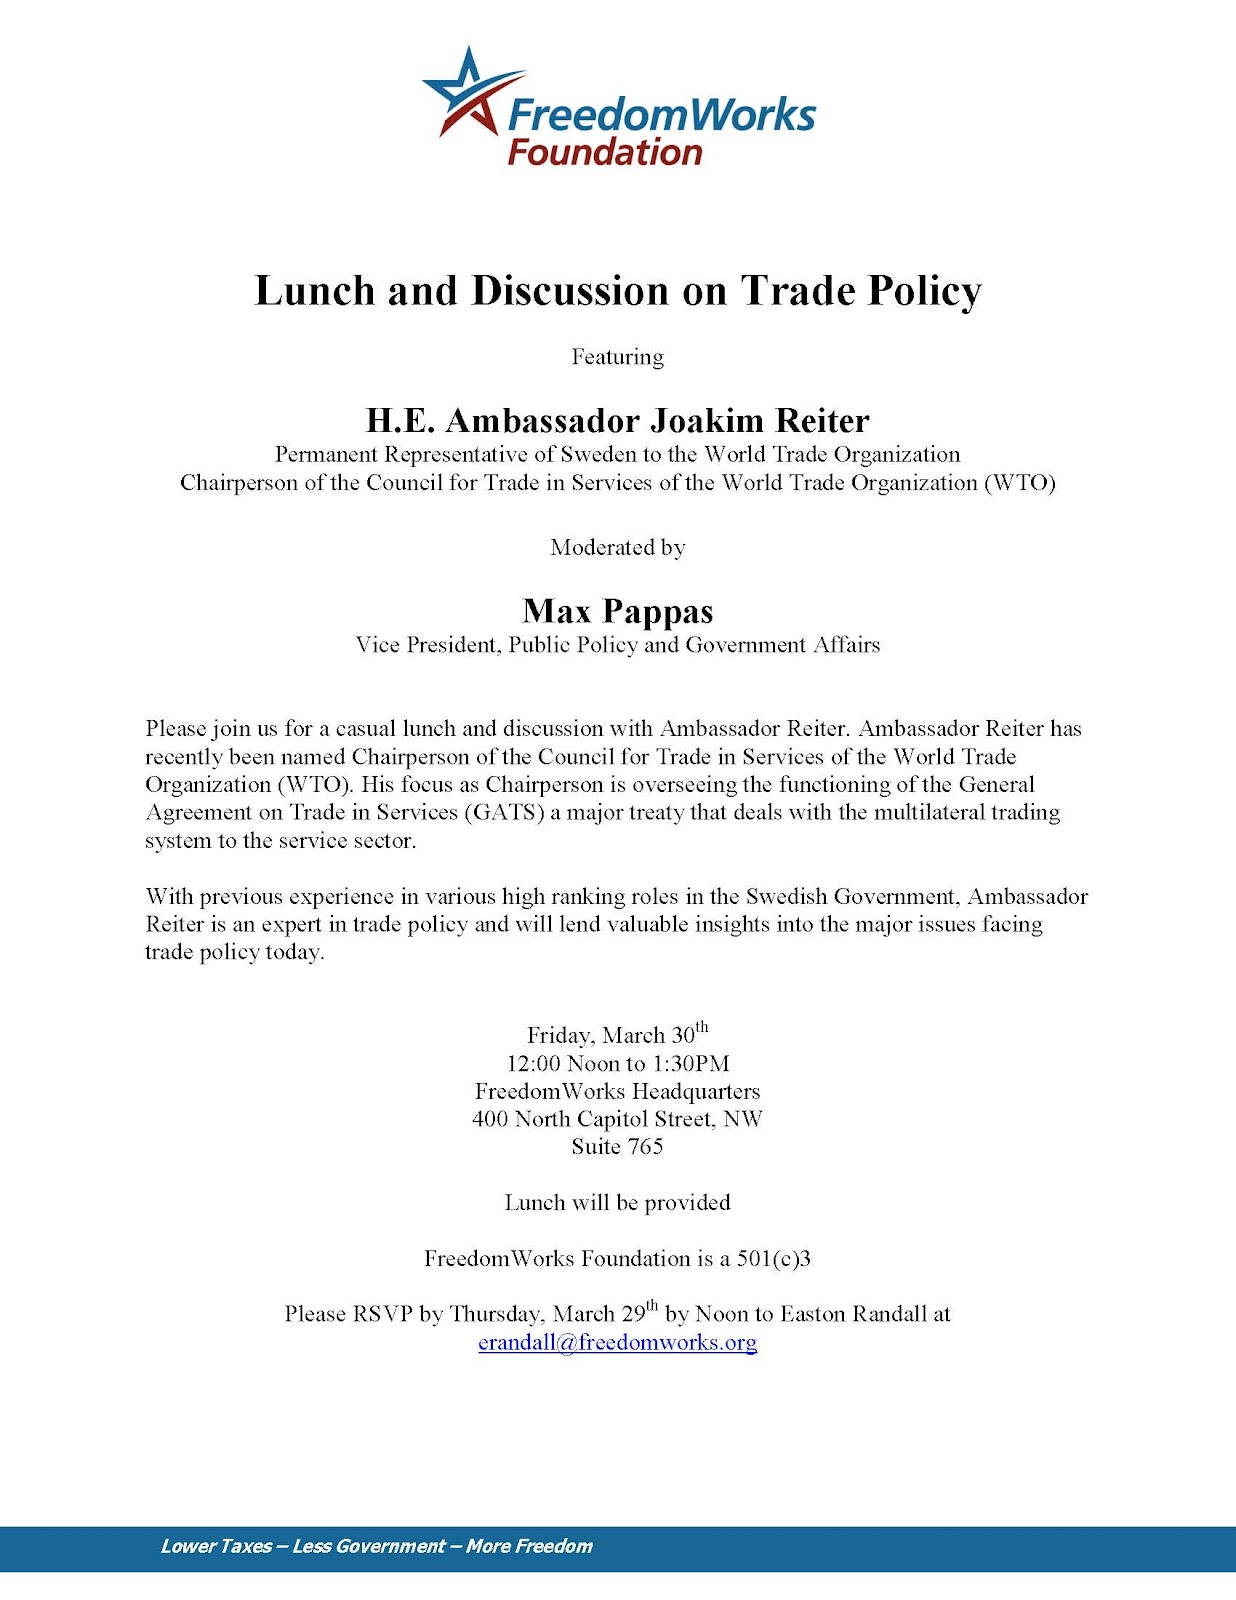 Scott lincicome attention dc trade nerds have lunch with wto scott lincicome attention dc trade nerds have lunch with wto services chair amb joakim reiter stopboris Image collections